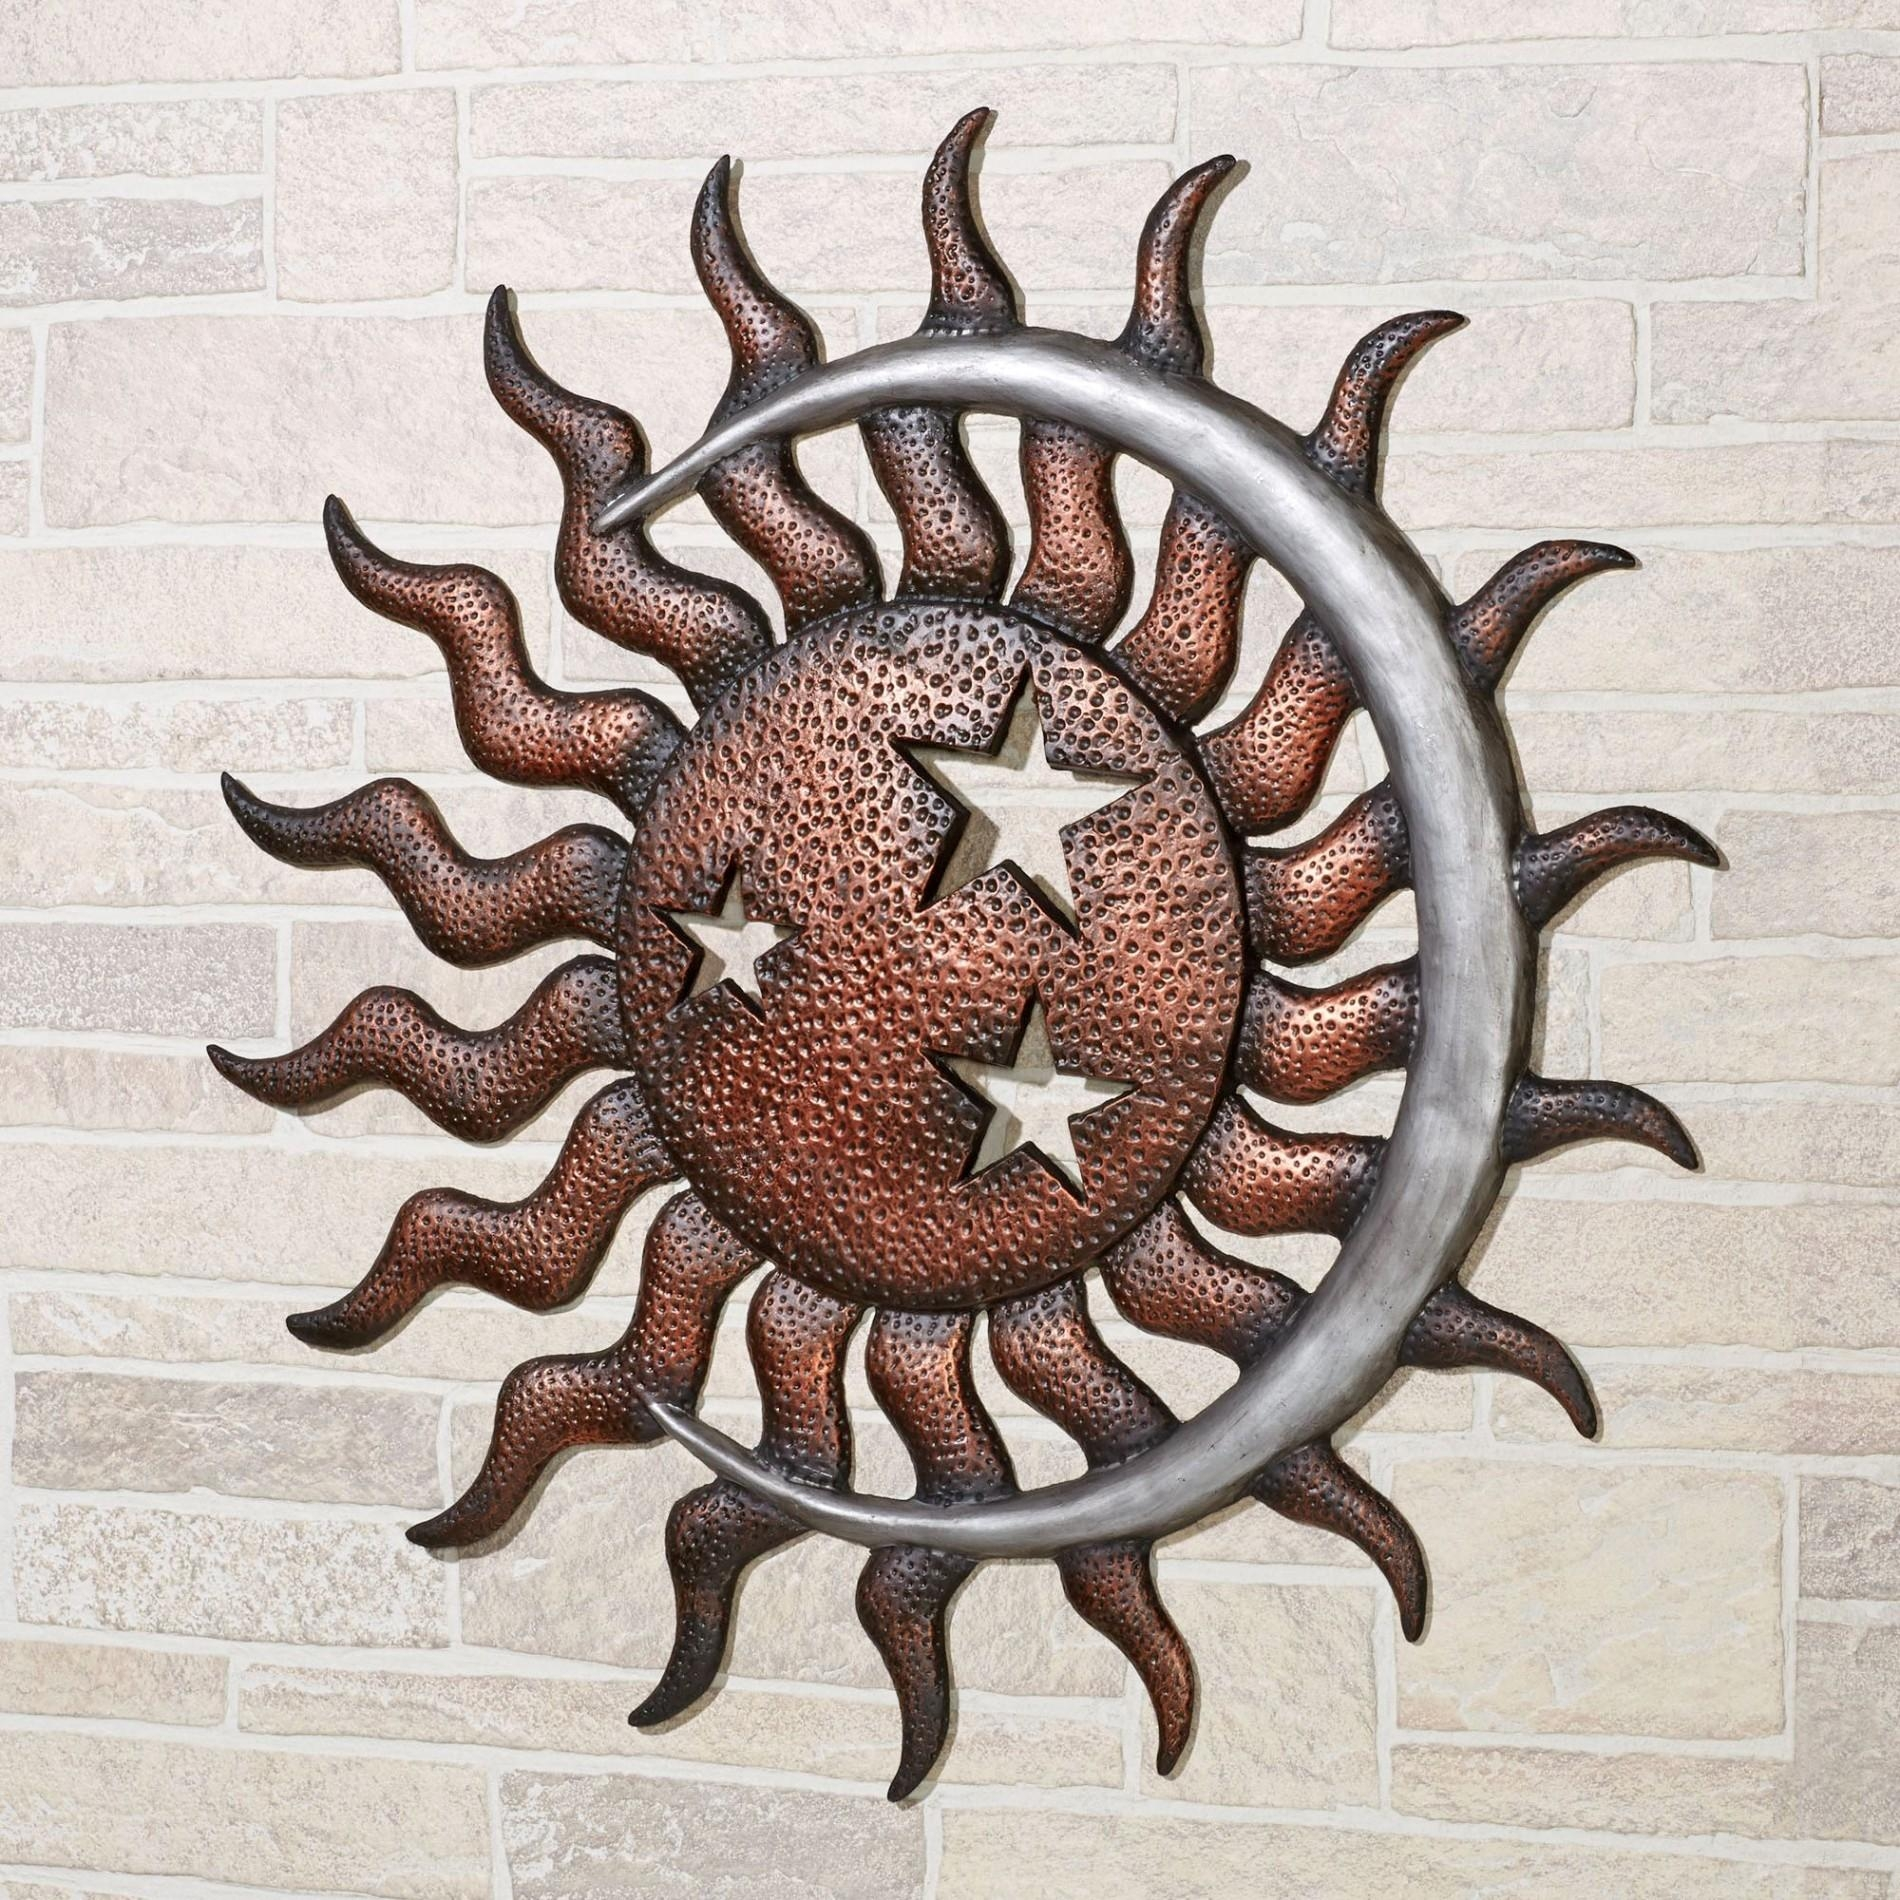 Unique Wrought Iron Wall Decor Walmart within Walmart Metal Wall Art